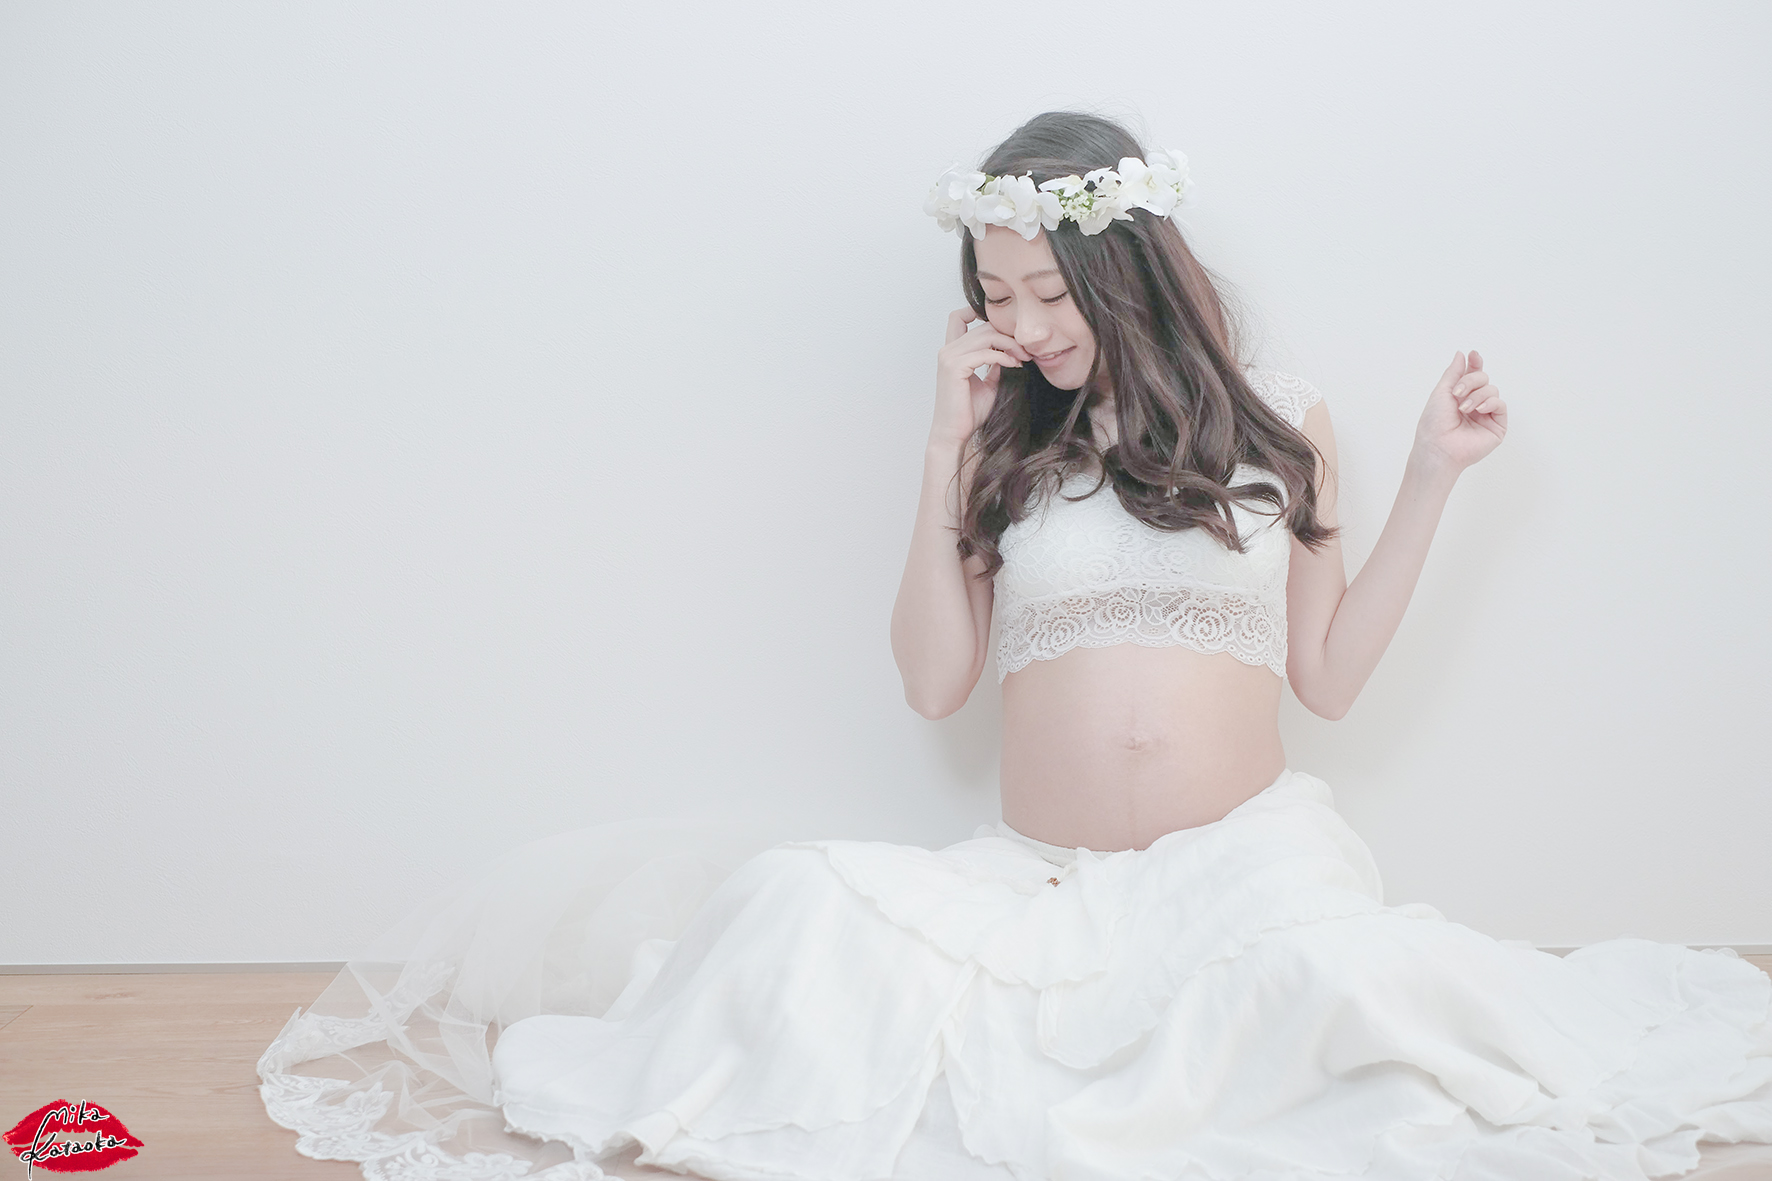 aki Maternity Photo